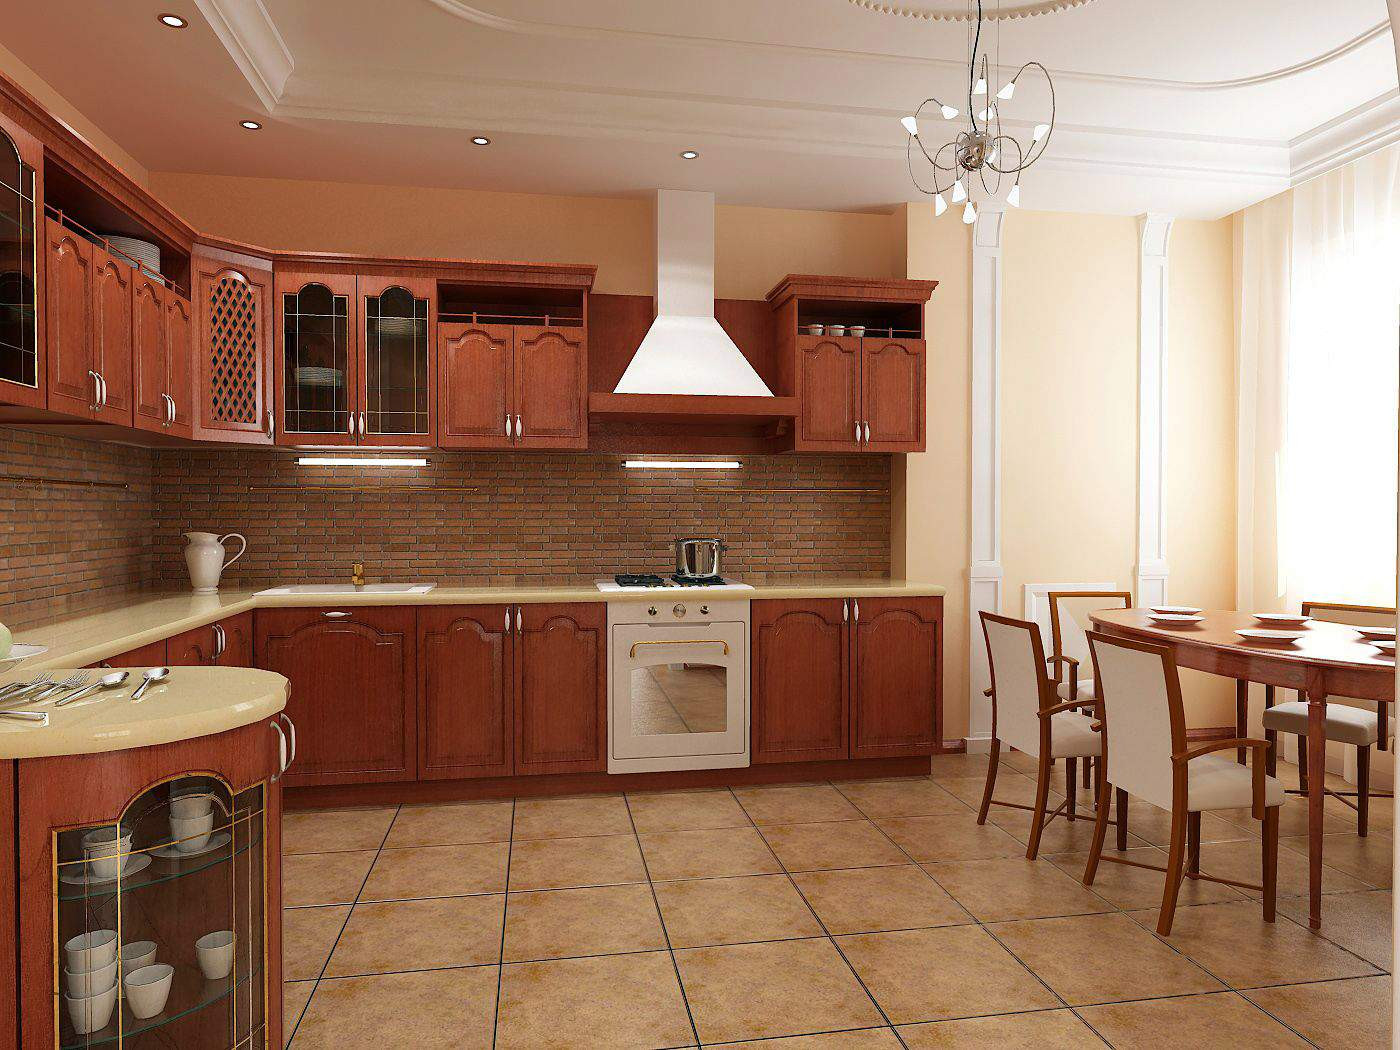 Best ideas about Best Kitchen Ideas . Save or Pin Small Kitchen Design Ideas with the Best Decoration Now.